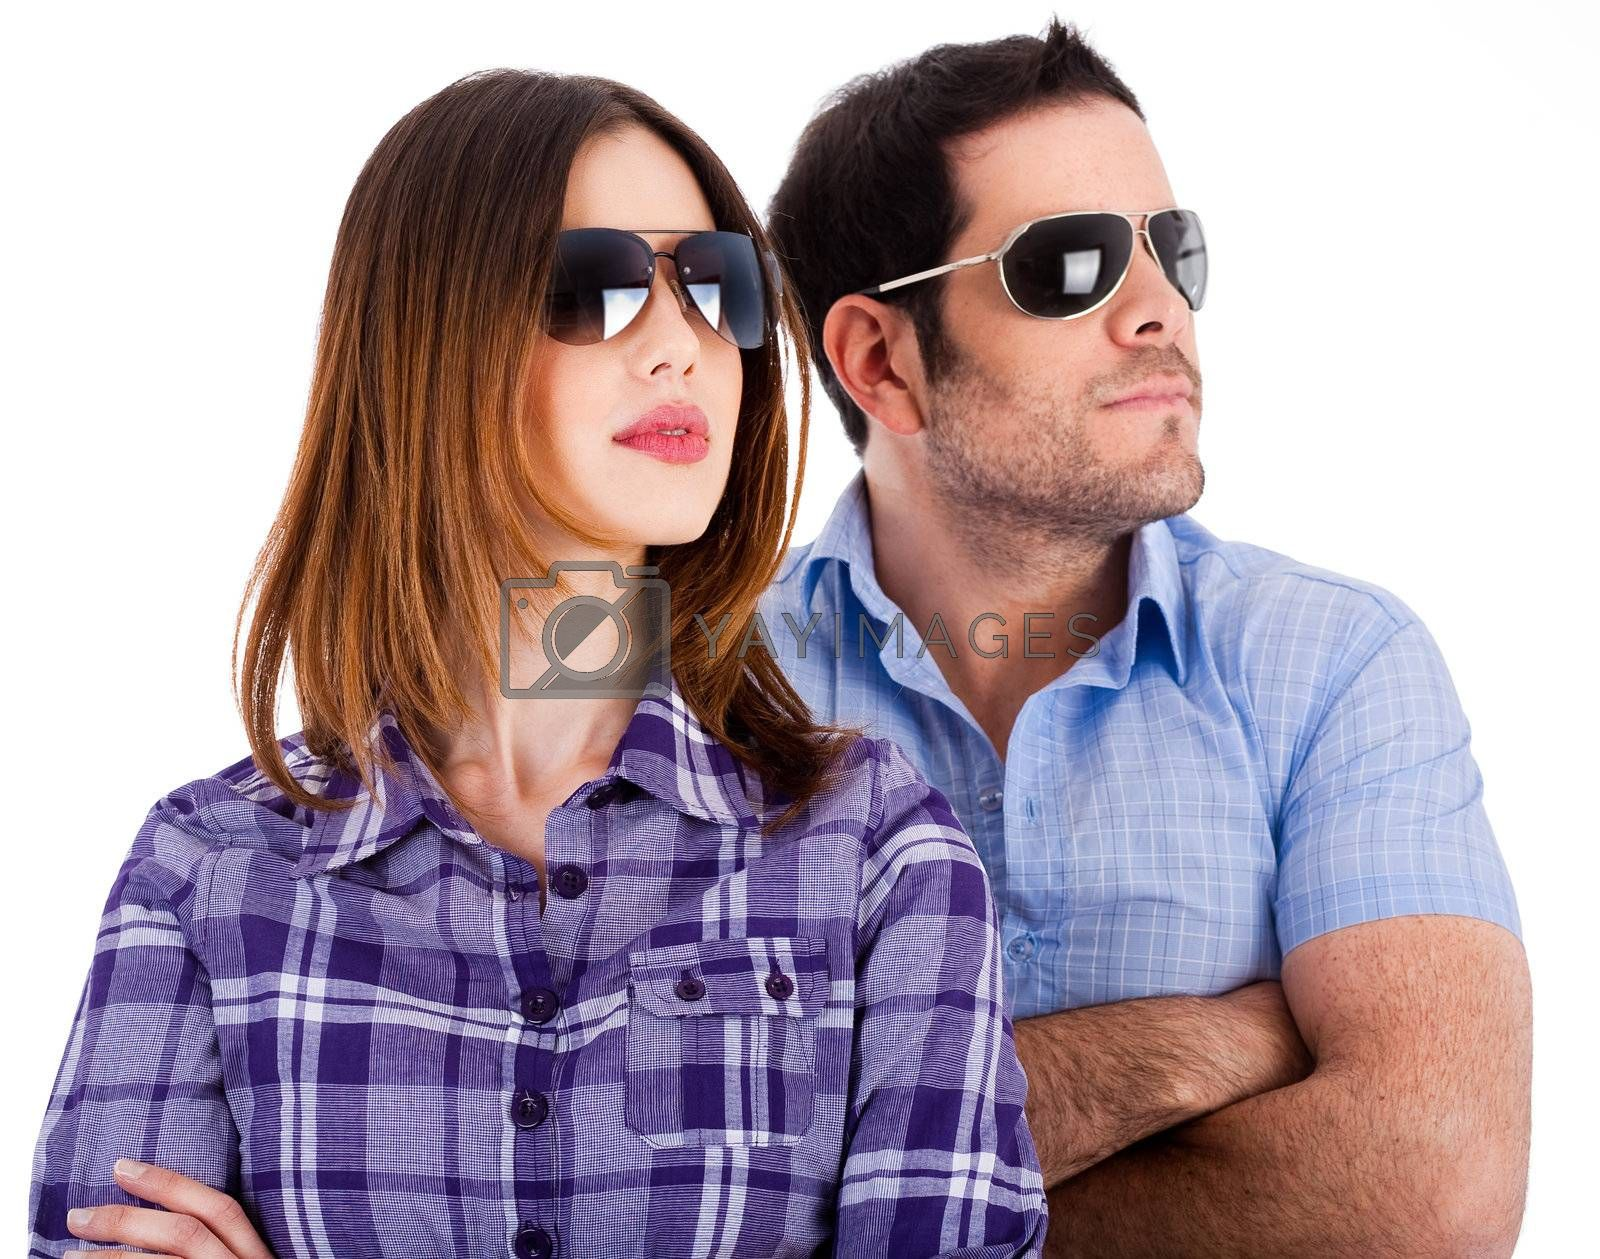 Fsshion models looking left with sunglasses on a isolated white background